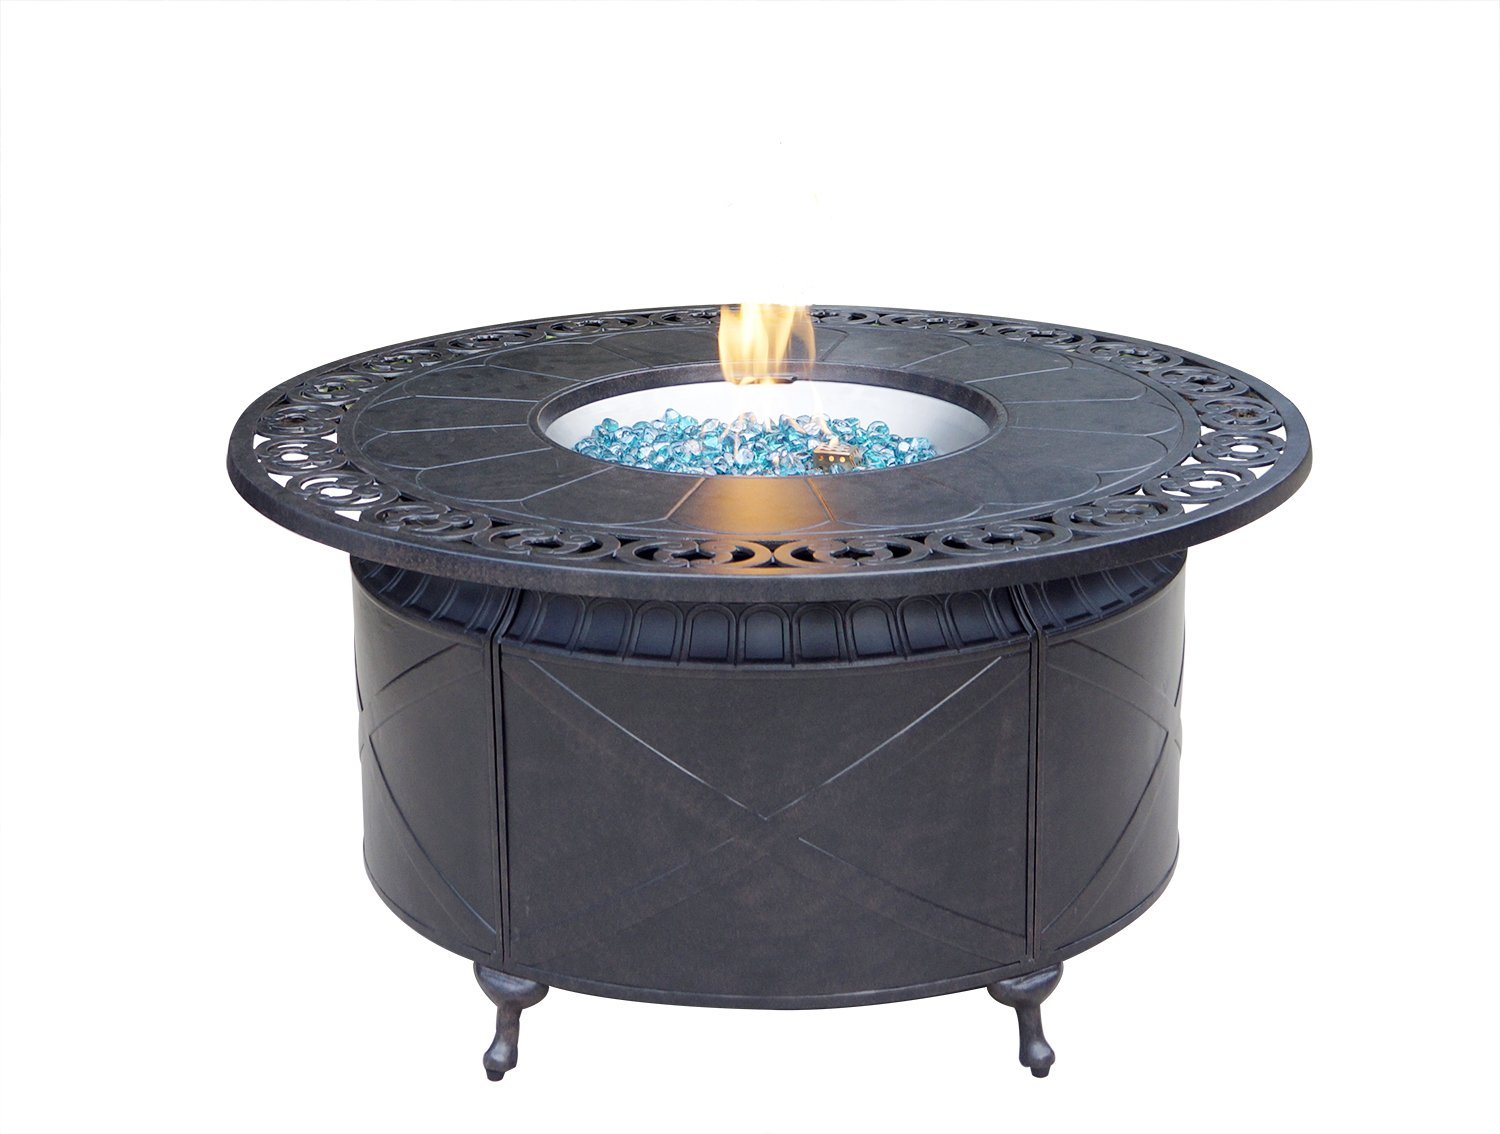 AC HOME & PATIO AC35-QB Round Propane Firepit Chat Table with Fire Glass, 47'', Desert Bronze Finish